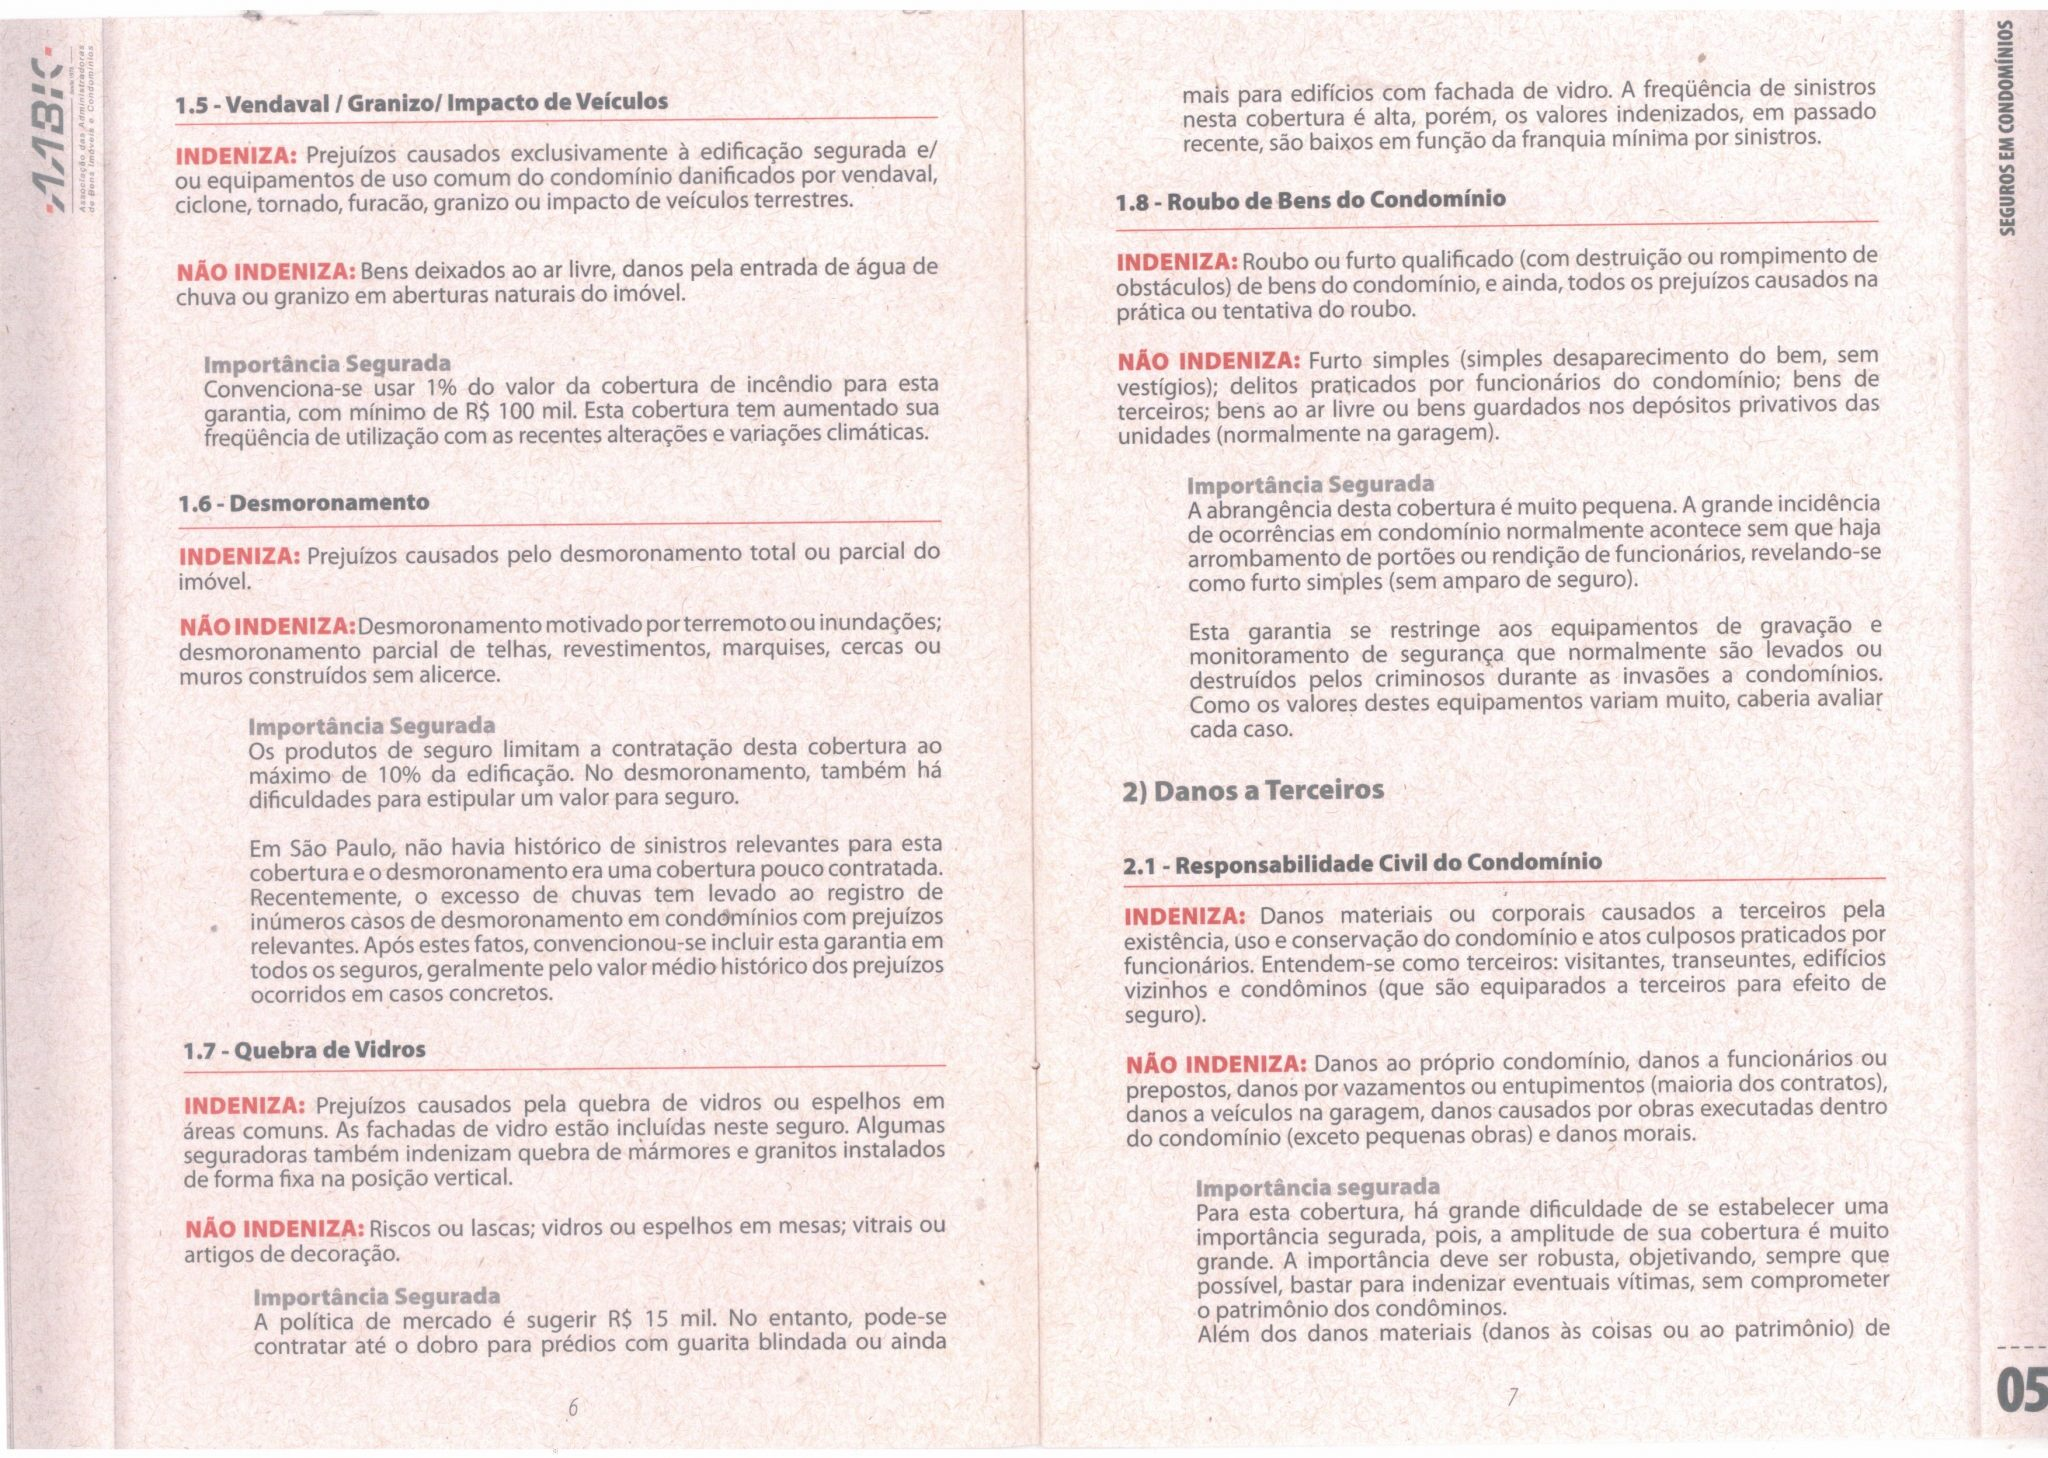 Scan_20190312_142743_003